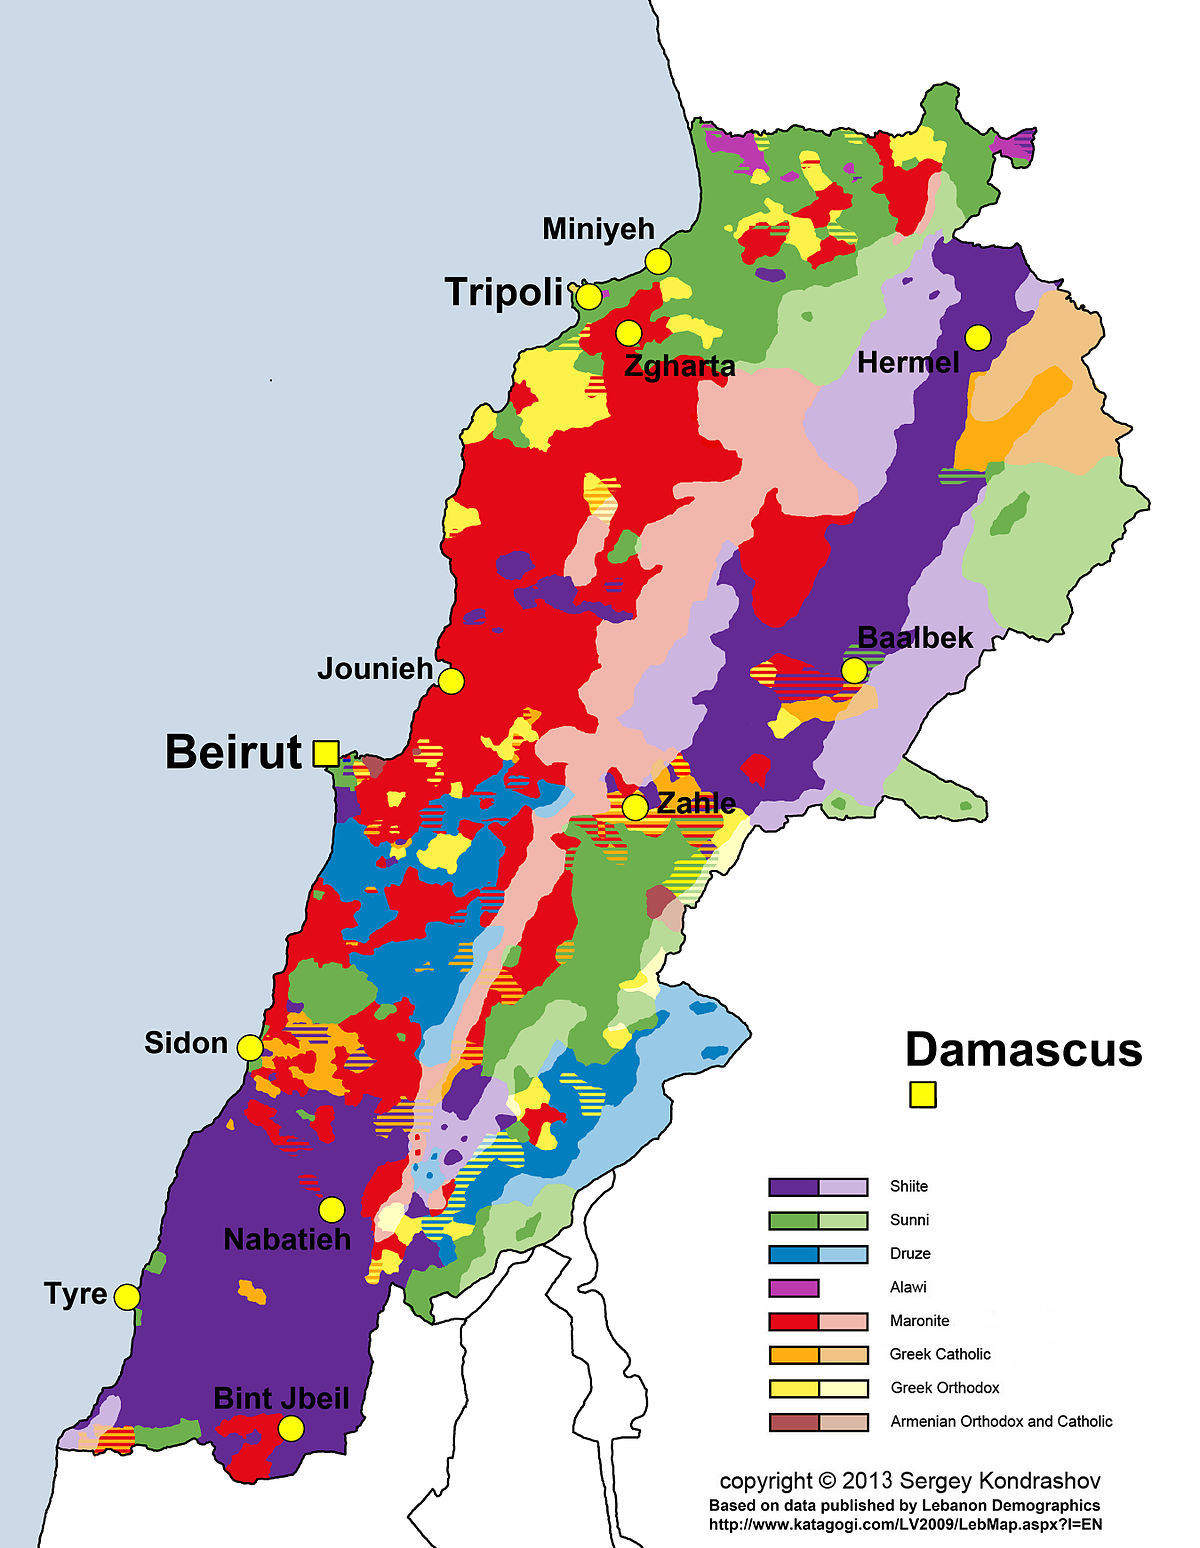 islam in lebanon wikipedia